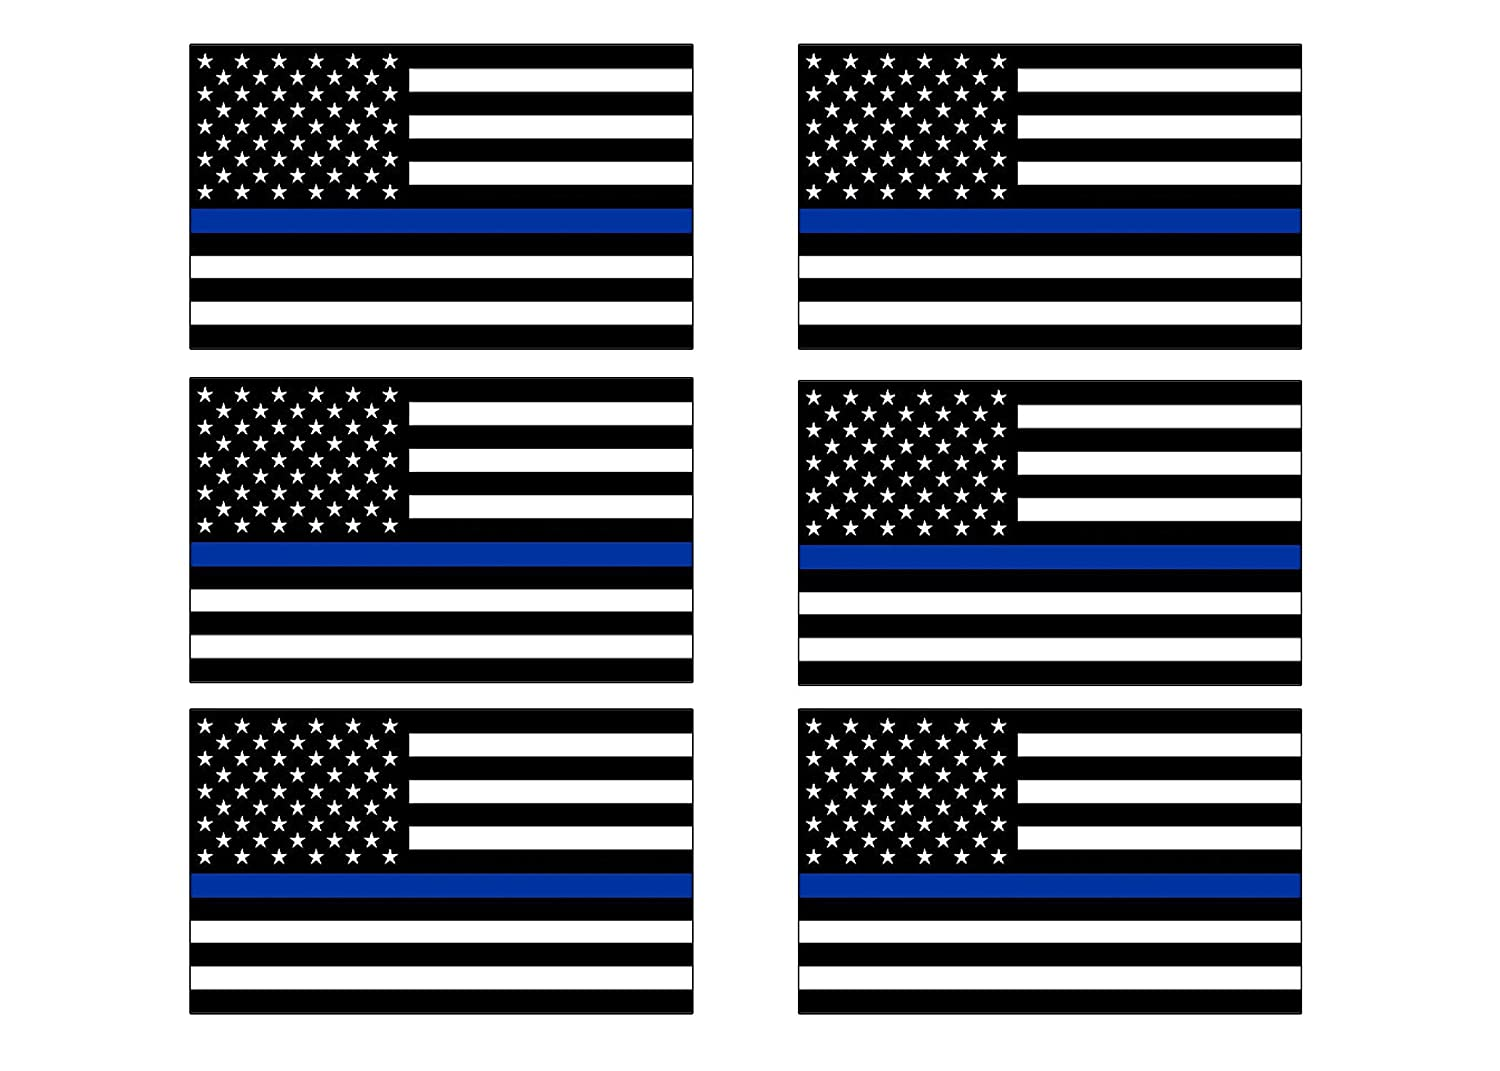 Thin Blue Line Blue Lives Matter Flag Sticker Vinyl Decal Support of Police and Law Enforcement Officers 6 Pack